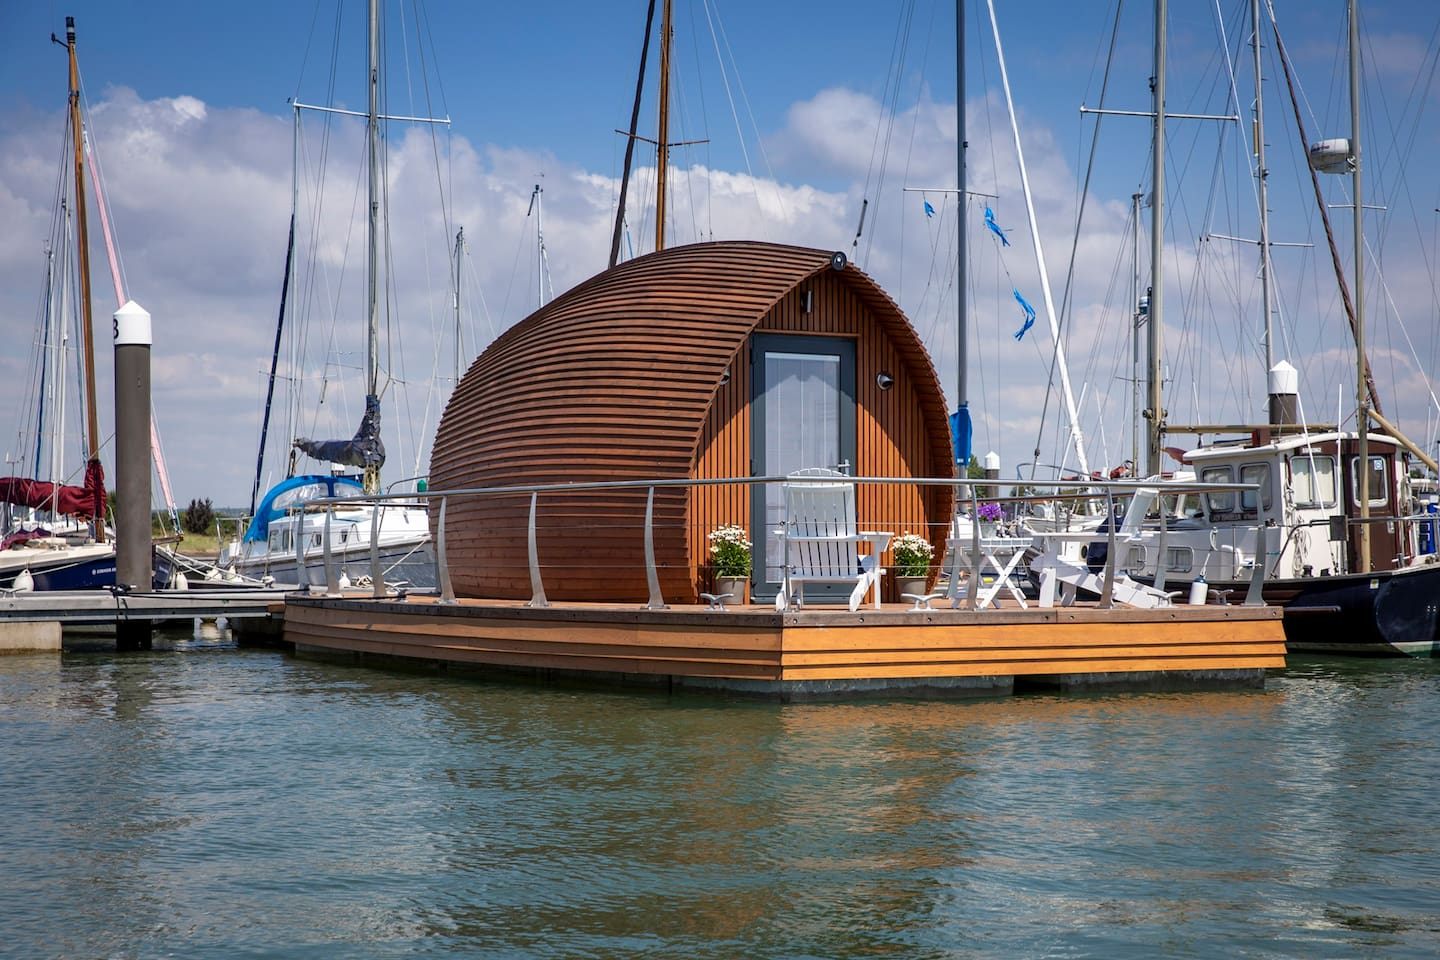 The beautiful Ark 900 in Chichester Harbour AONB. Emsworth